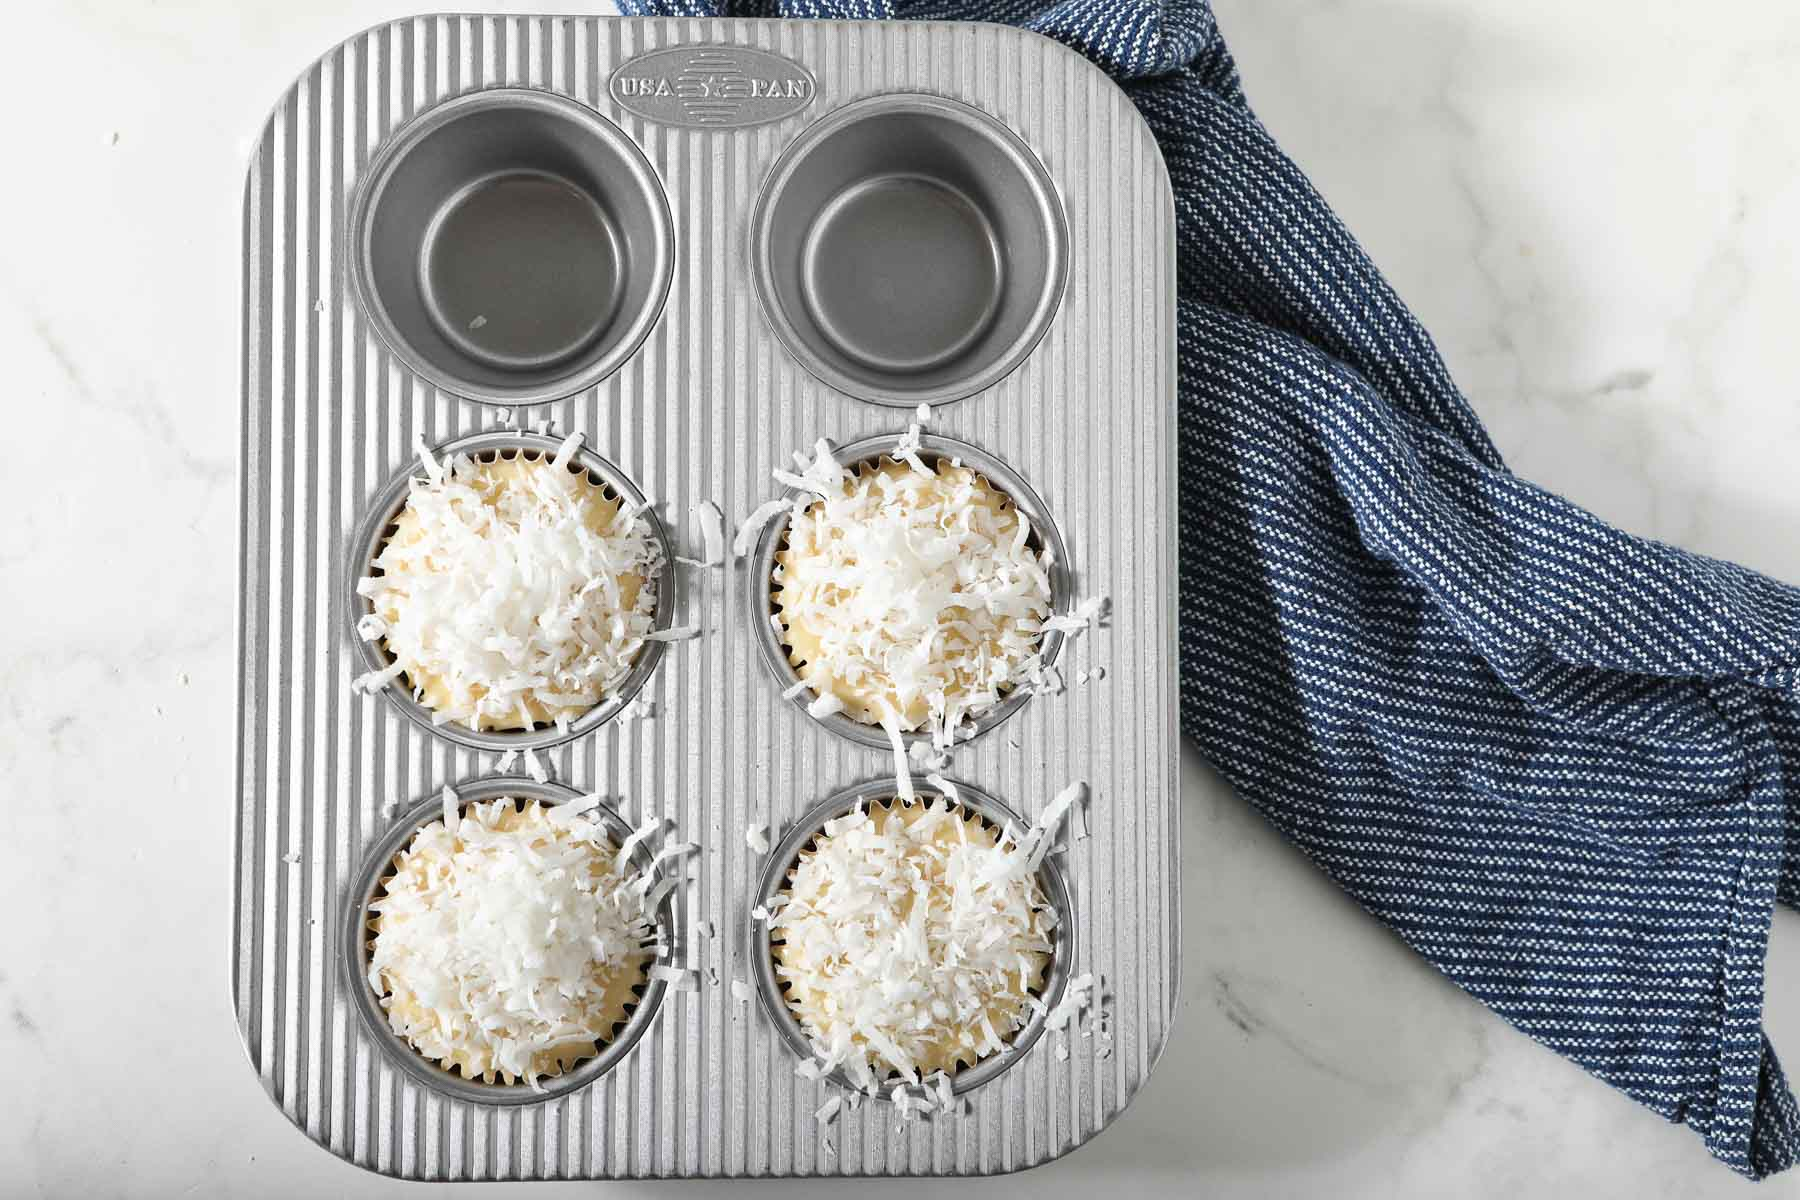 Shredded coconut on top of muffins, before baking.